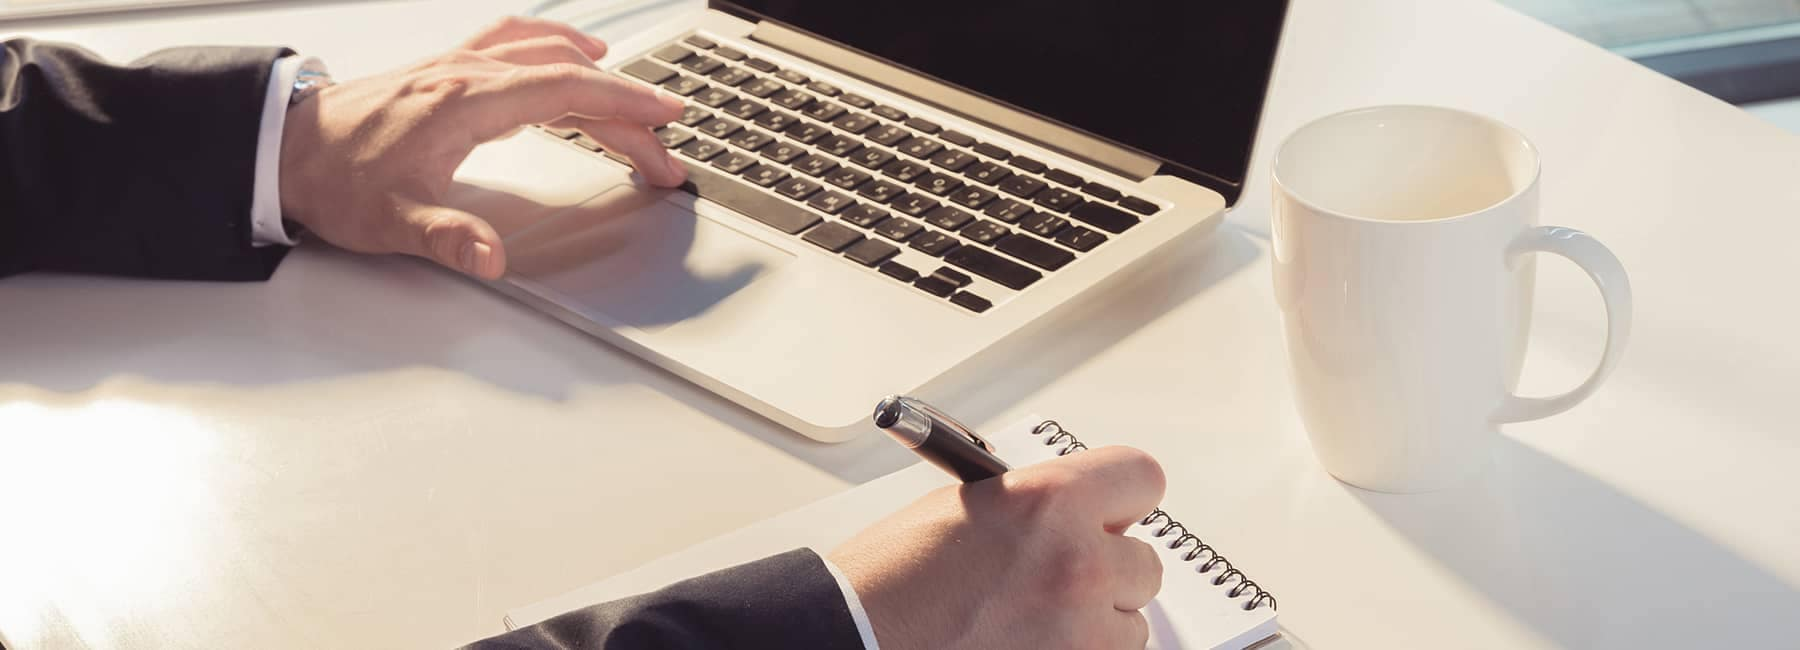 Hand with computer and notepad